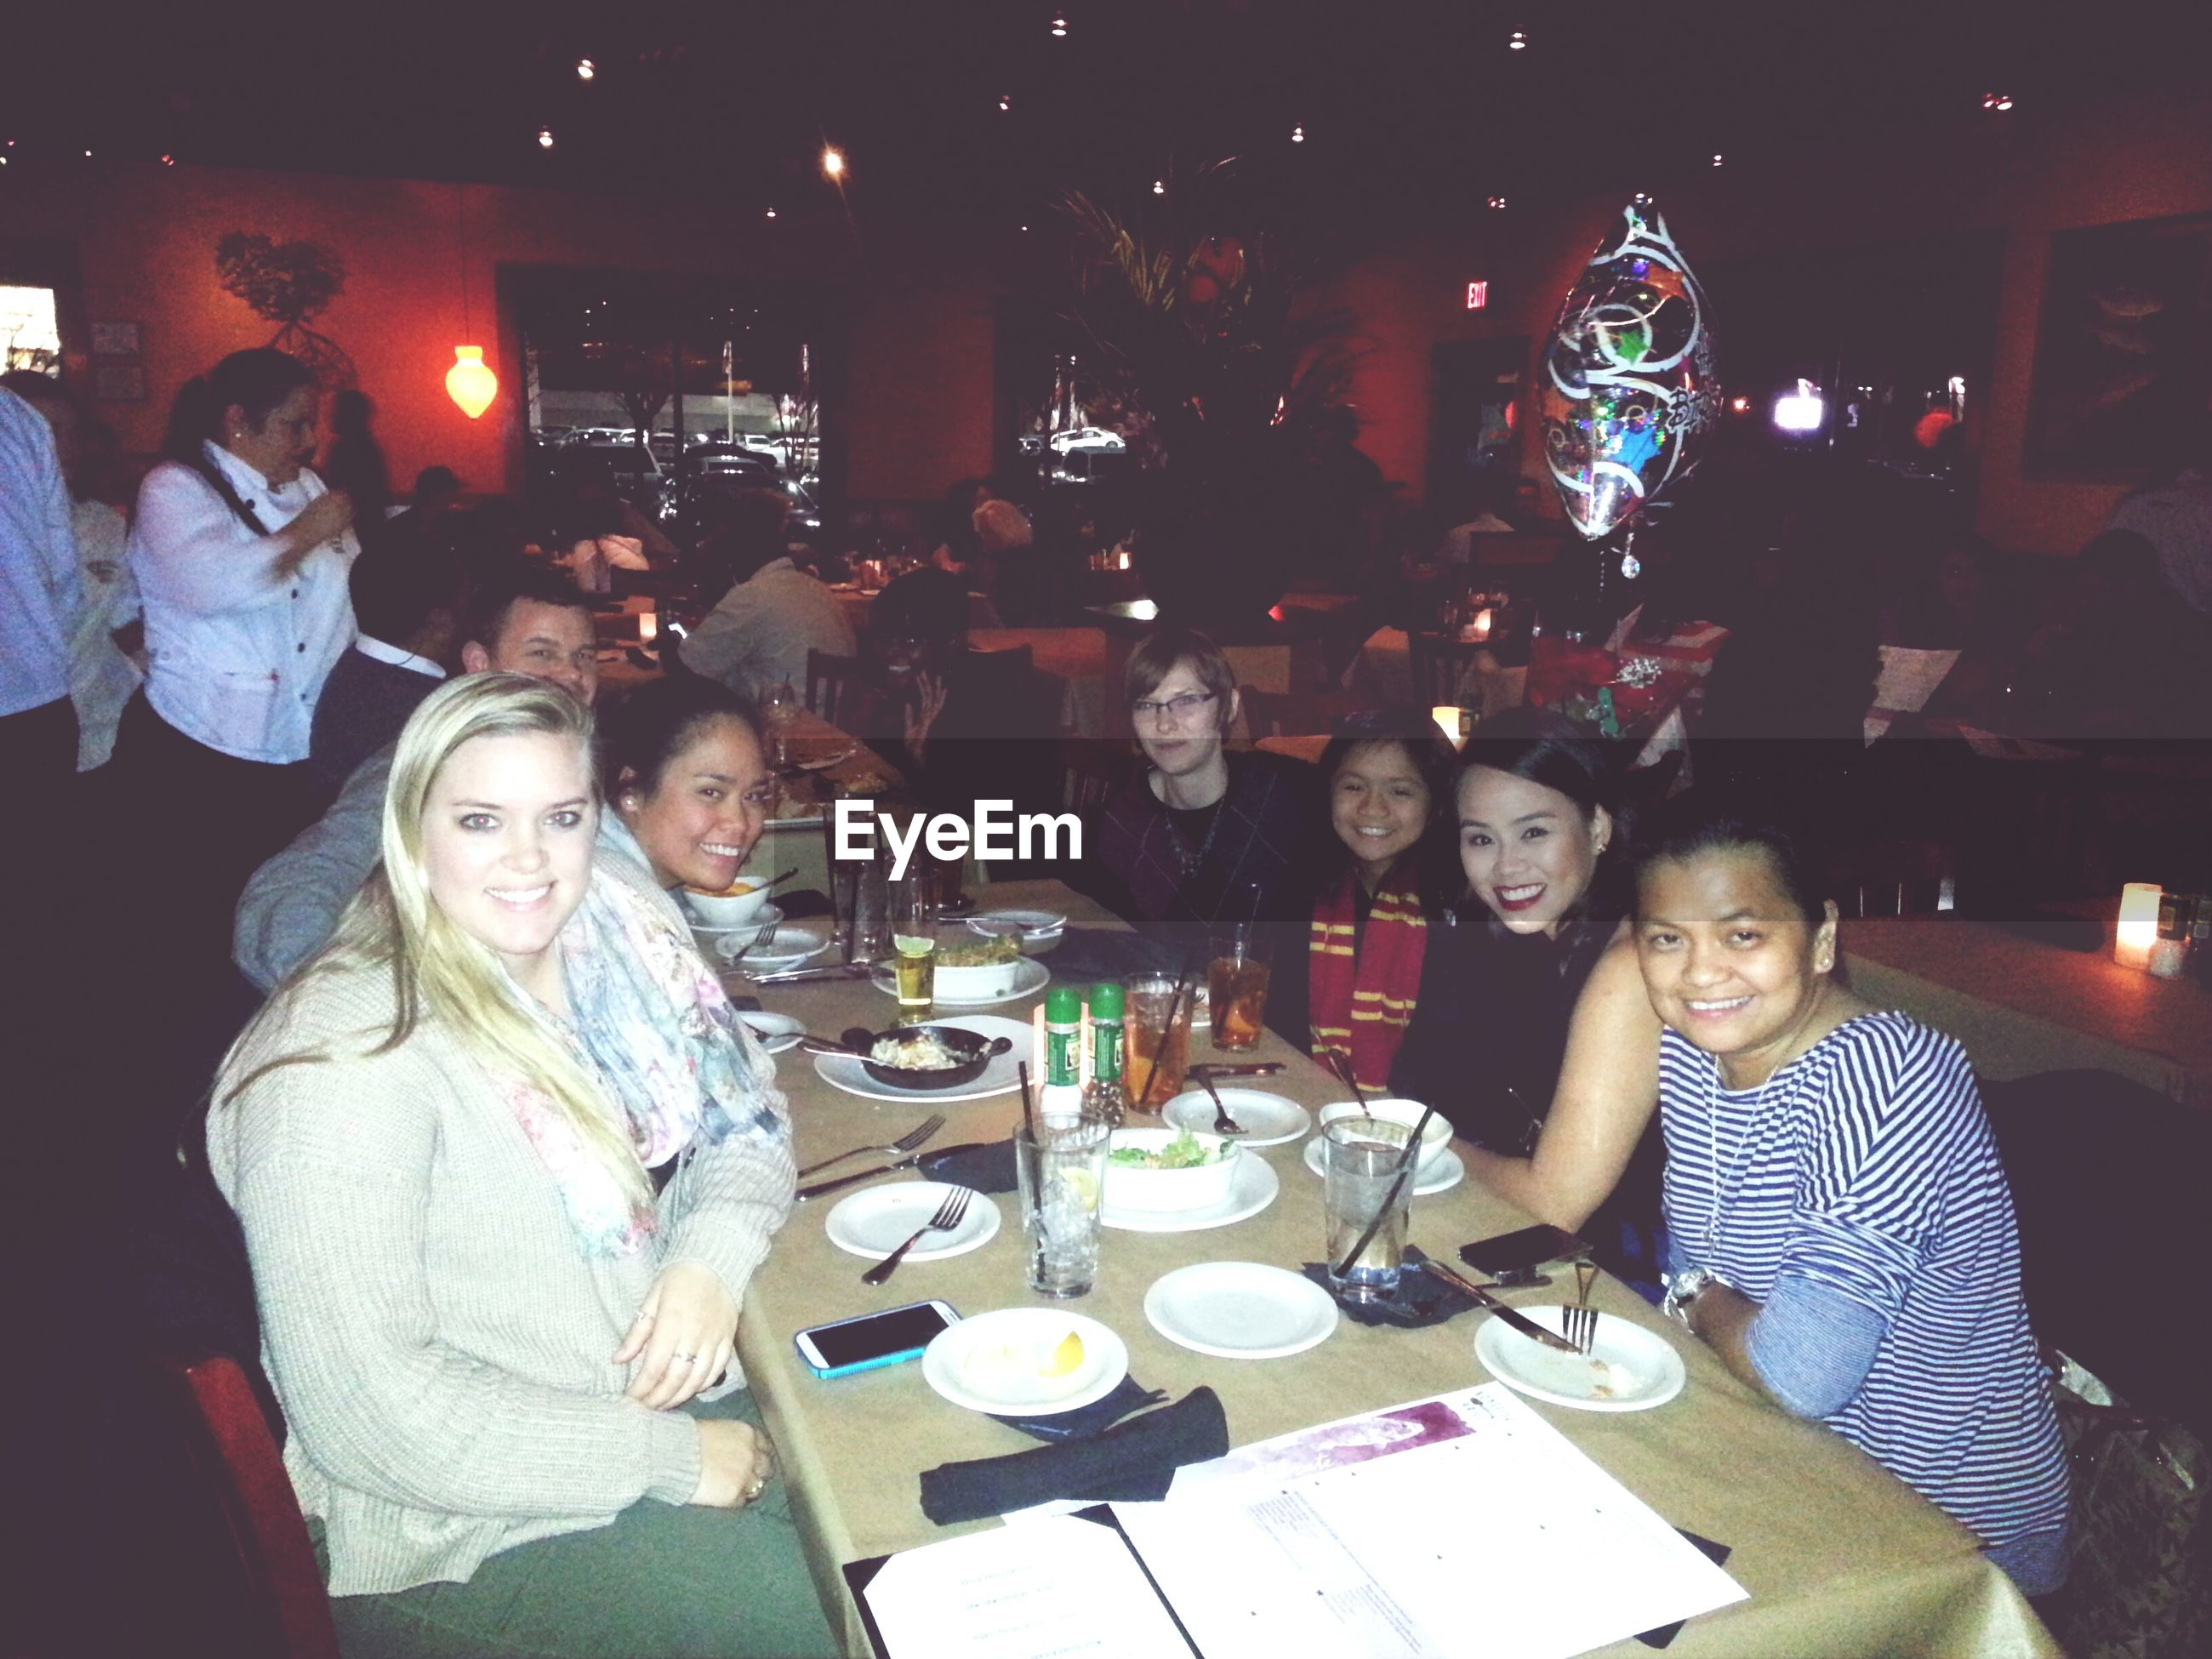 indoors, lifestyles, table, food and drink, drink, leisure activity, illuminated, restaurant, casual clothing, holding, celebration, men, sitting, night, drinking glass, food, front view